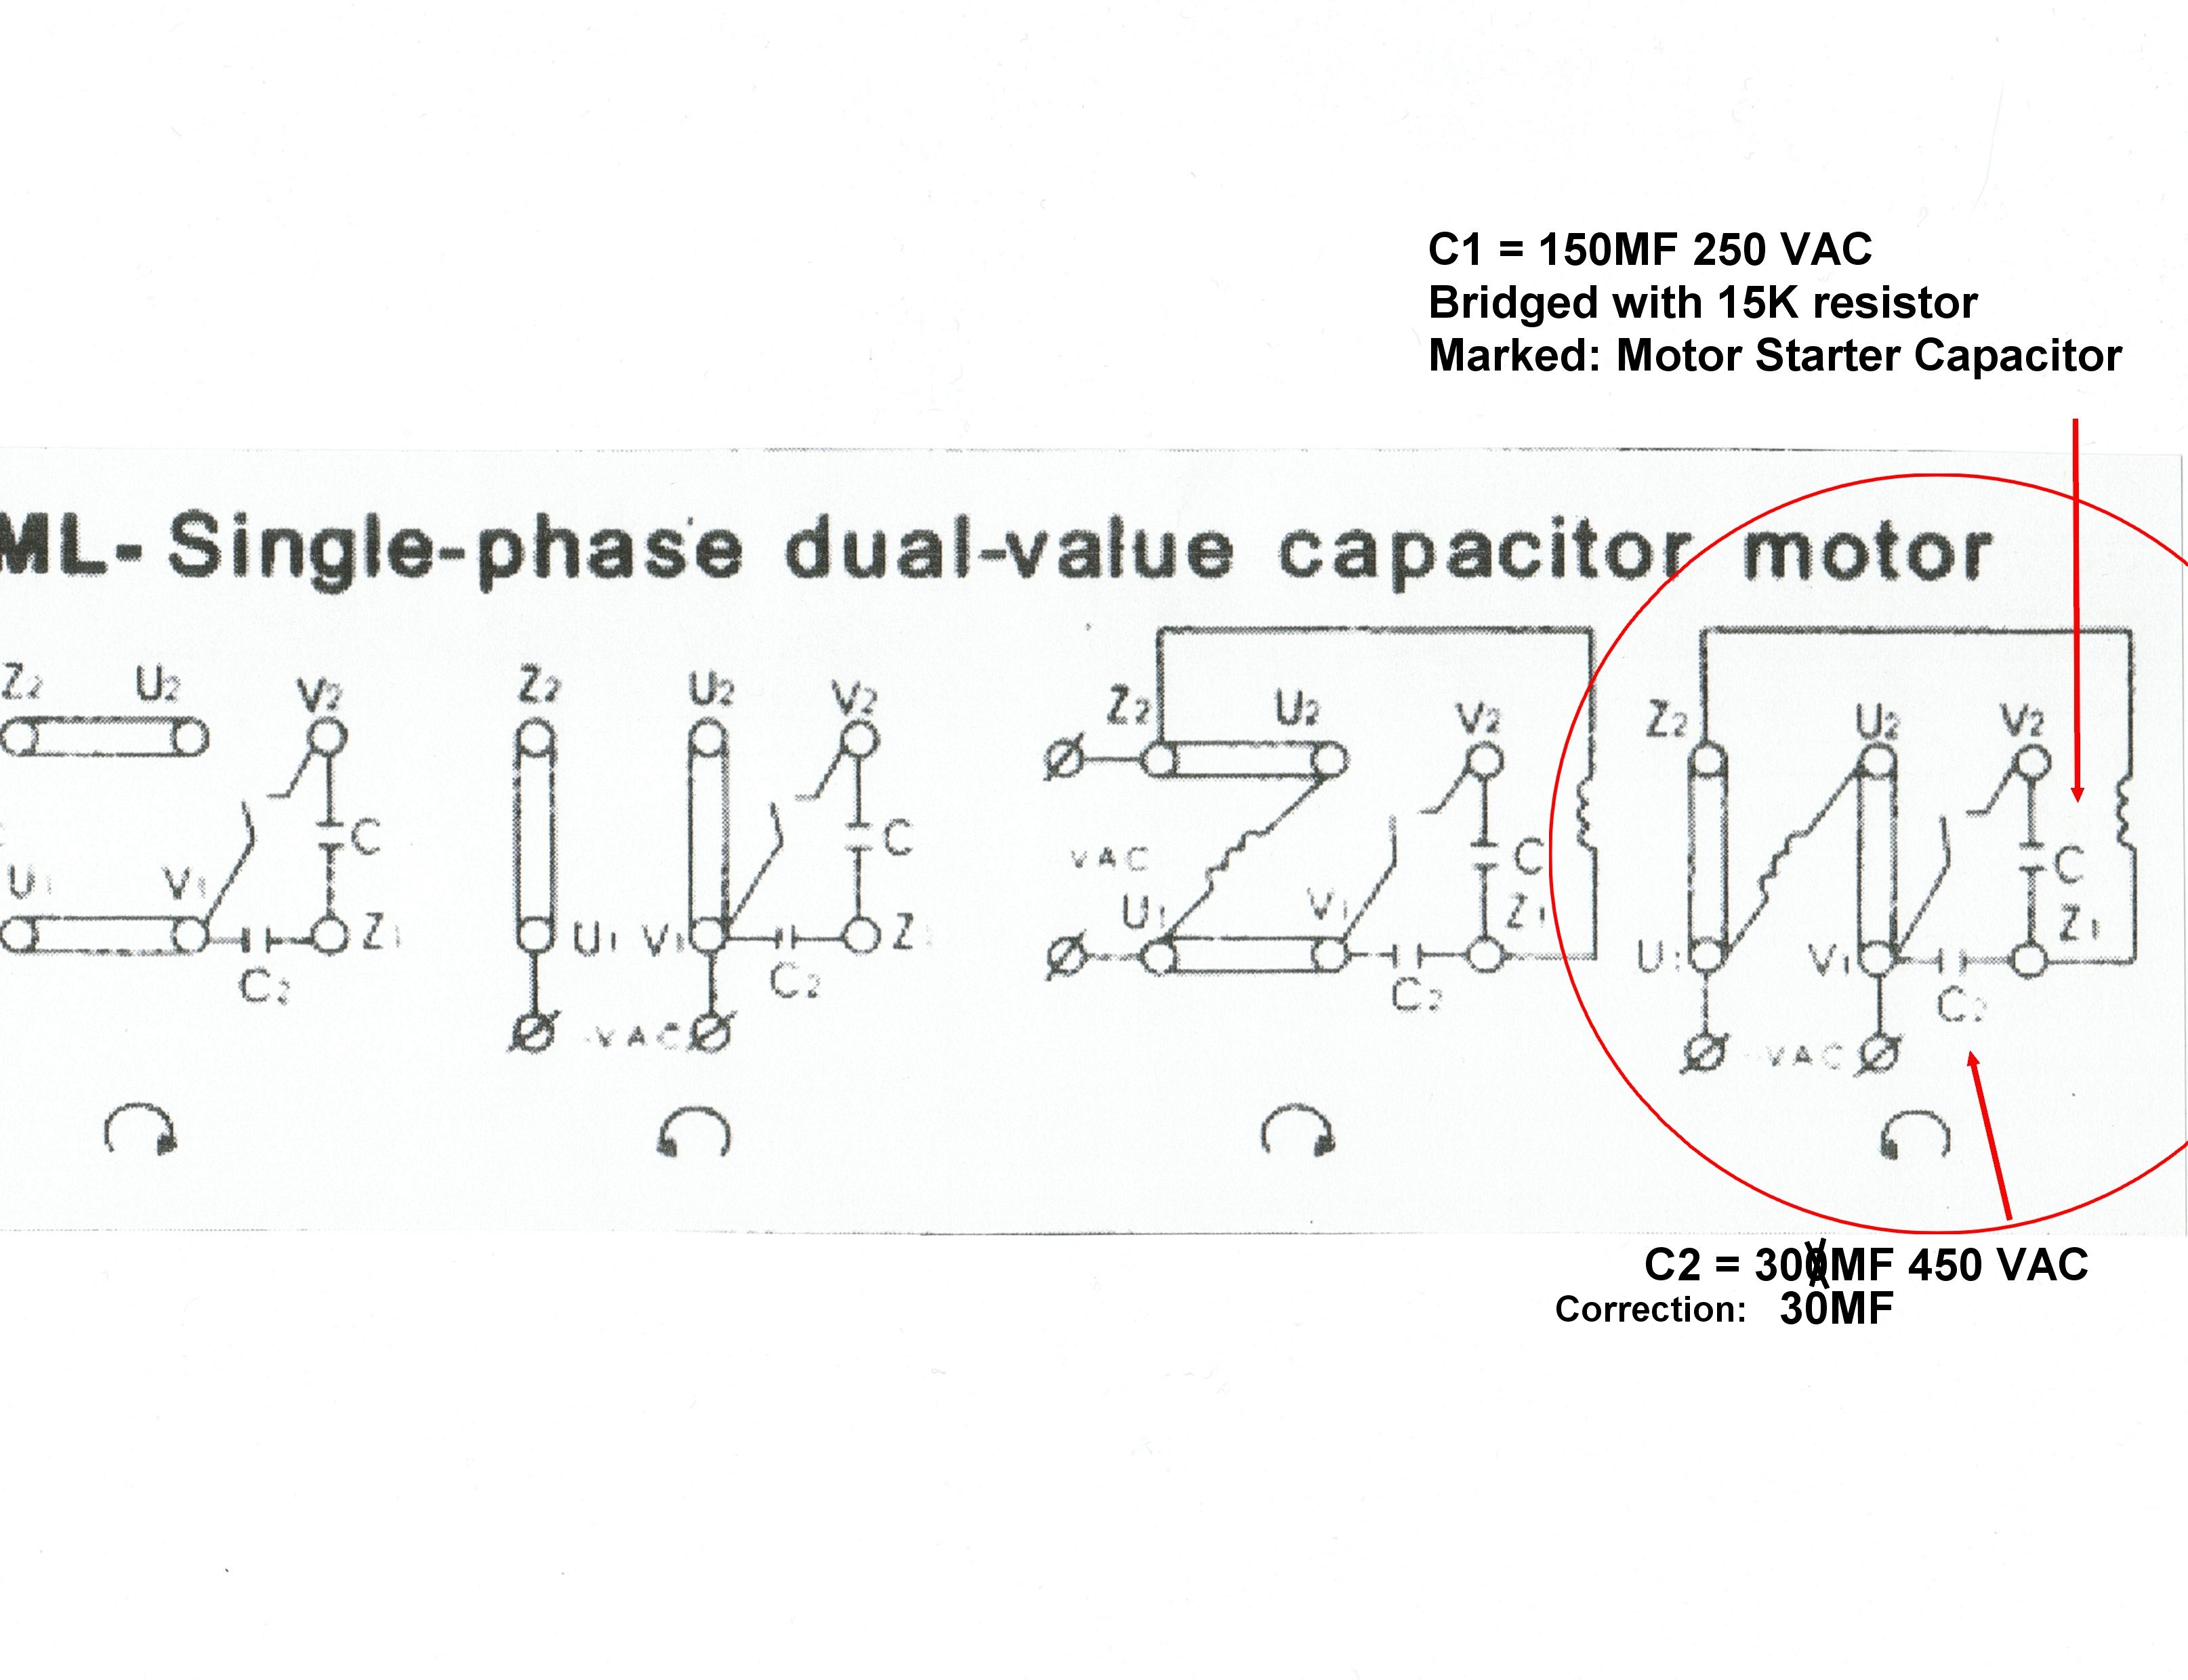 motor run capacitor wiring diagram wirdig tricks supplies 315720 single phase 3